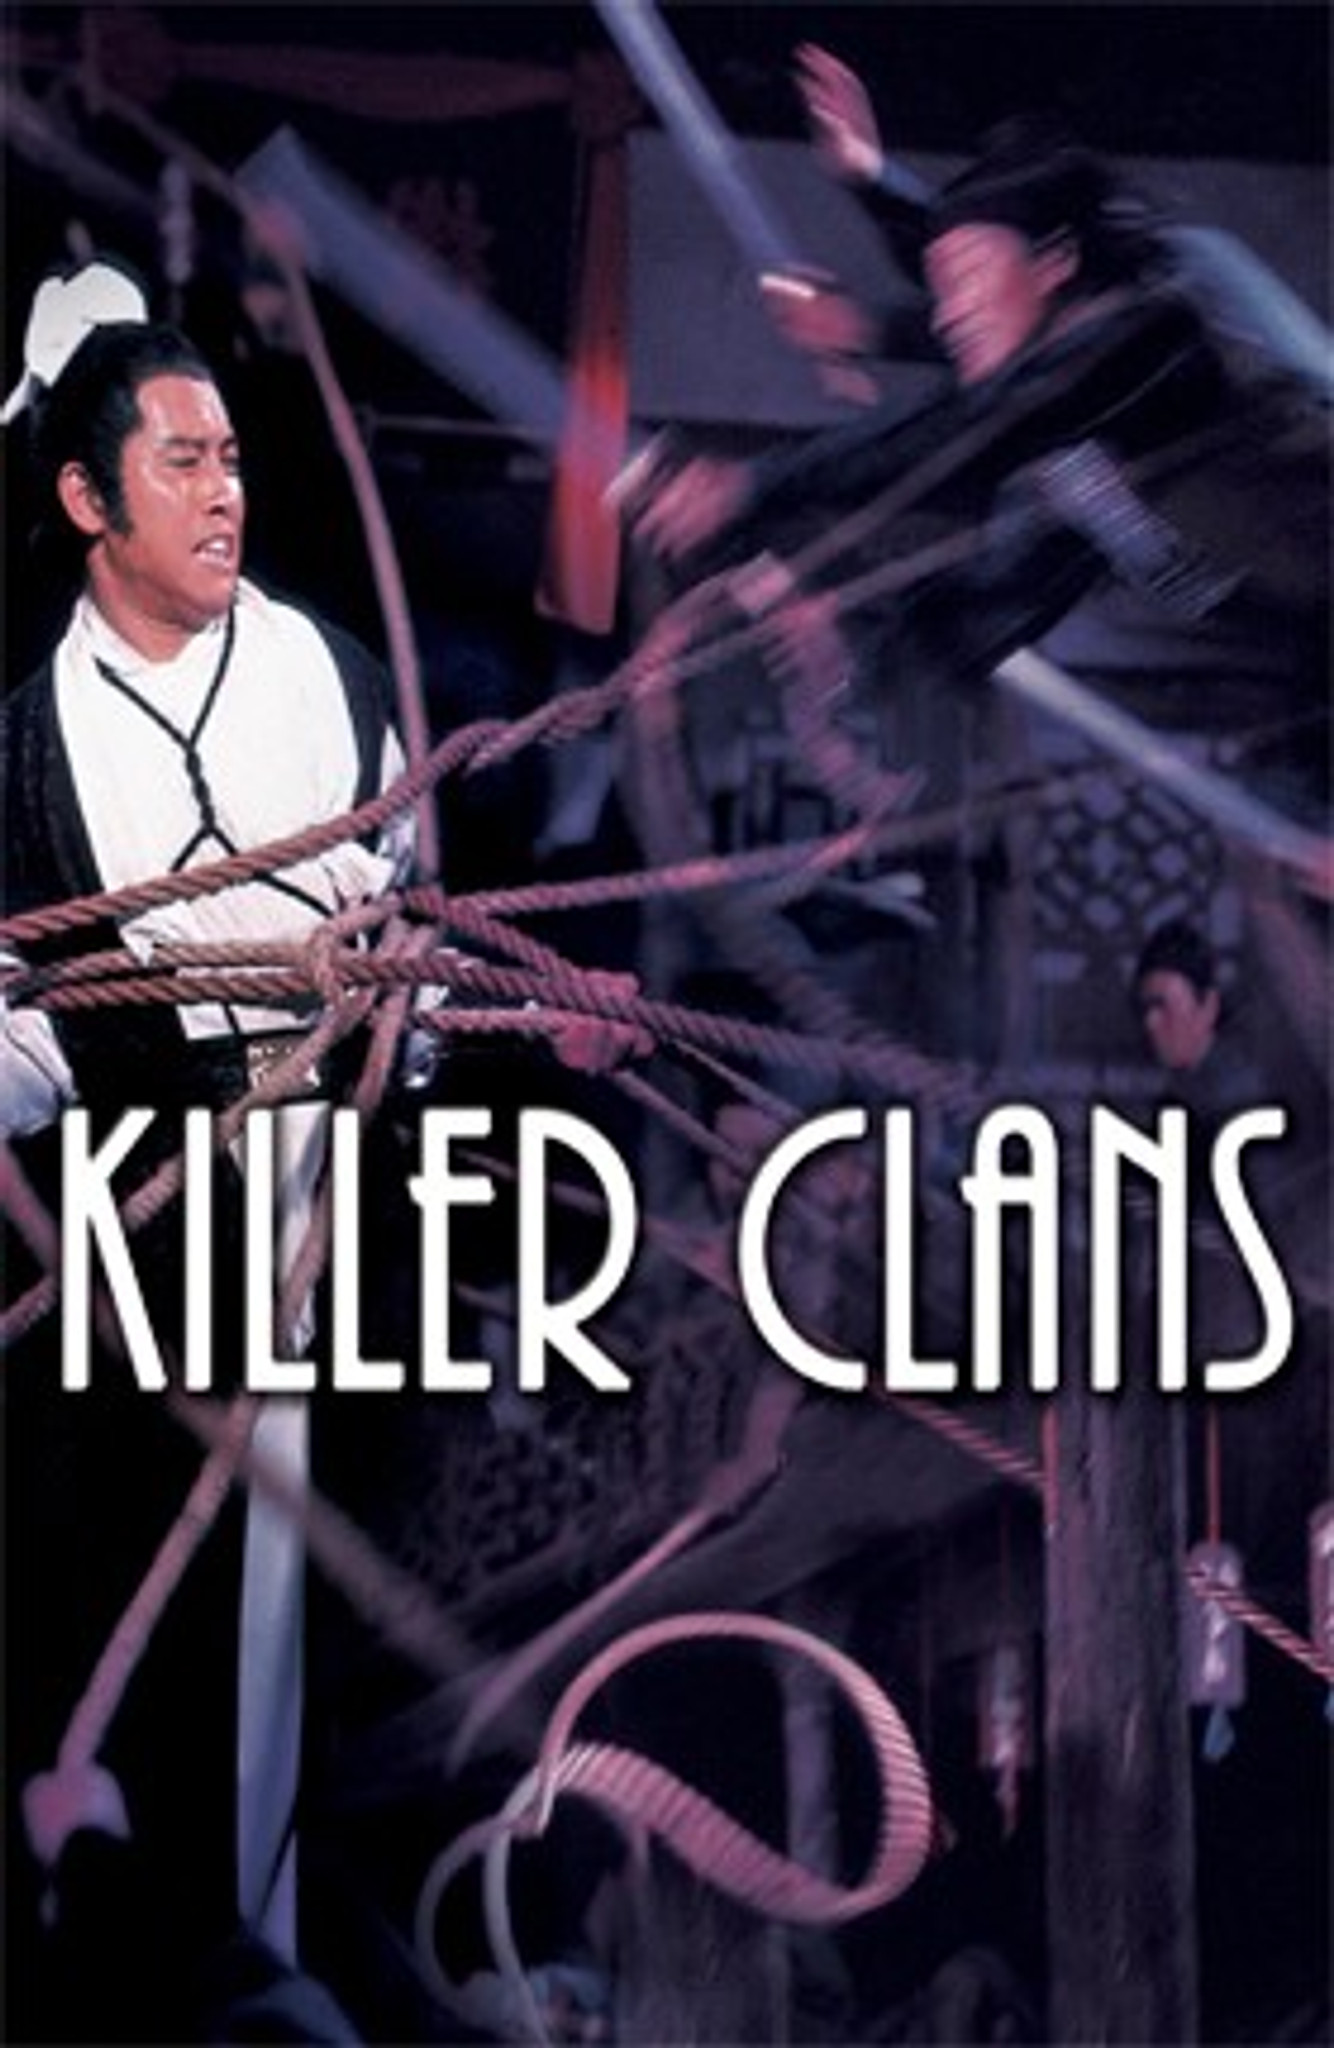 Killer Clans (1976) Dvd Shaw Brothers Martial Arts Film